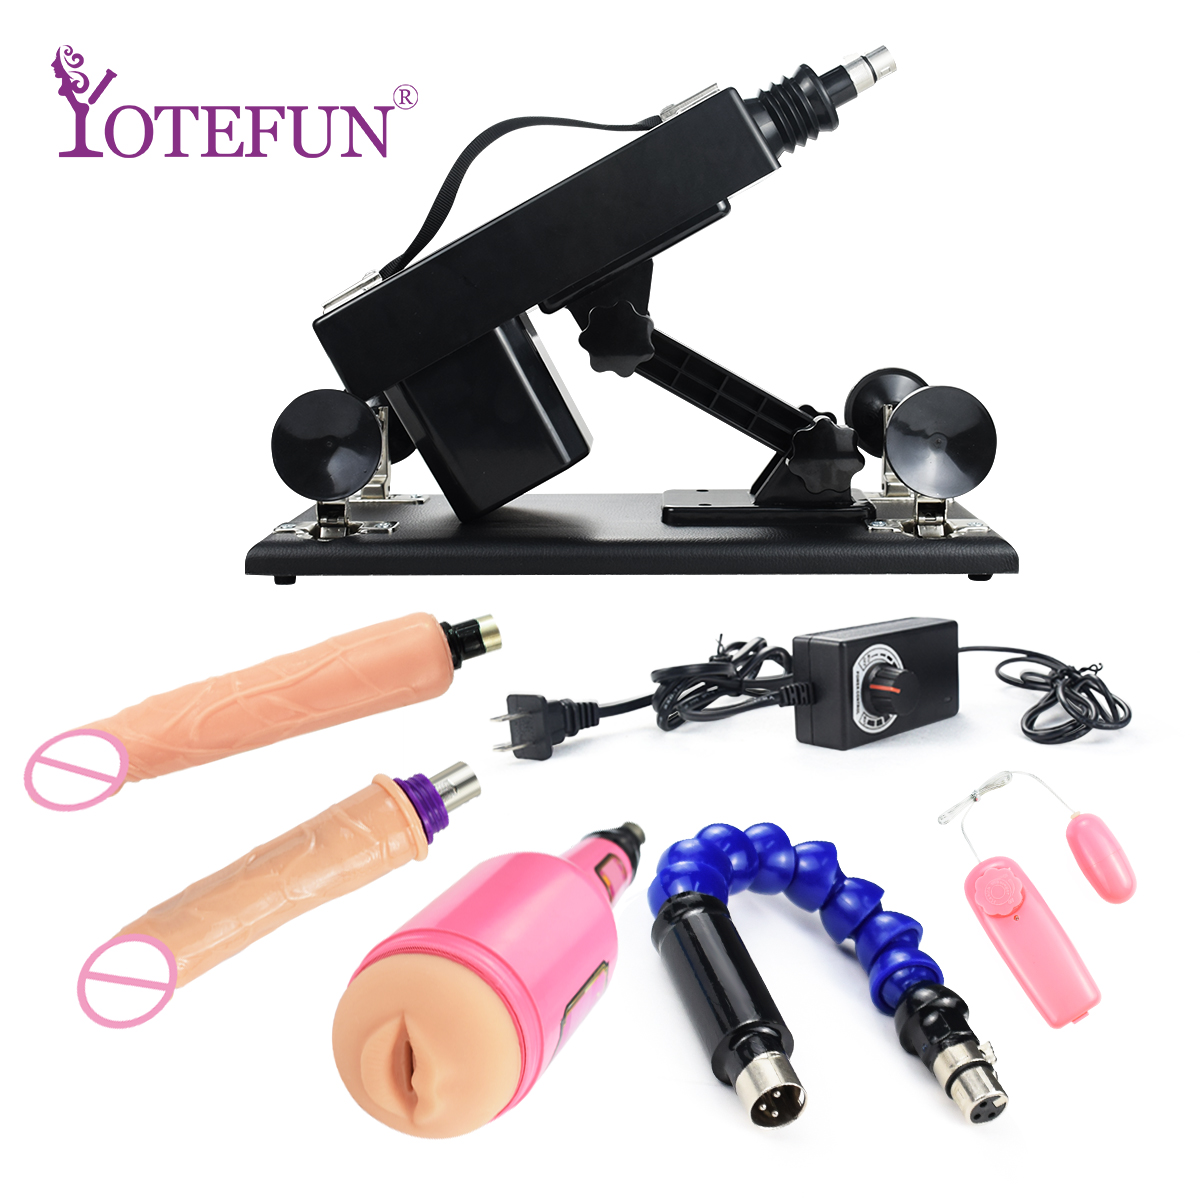 Degree Adjustable Retractable <font><b>Sex</b></font> <font><b>Machine</b></font> Gun with Male Masturbator Cup and 2 Kinds <font><b>Dildos</b></font> Love <font><b>Sex</b></font> Toys For Women and men image